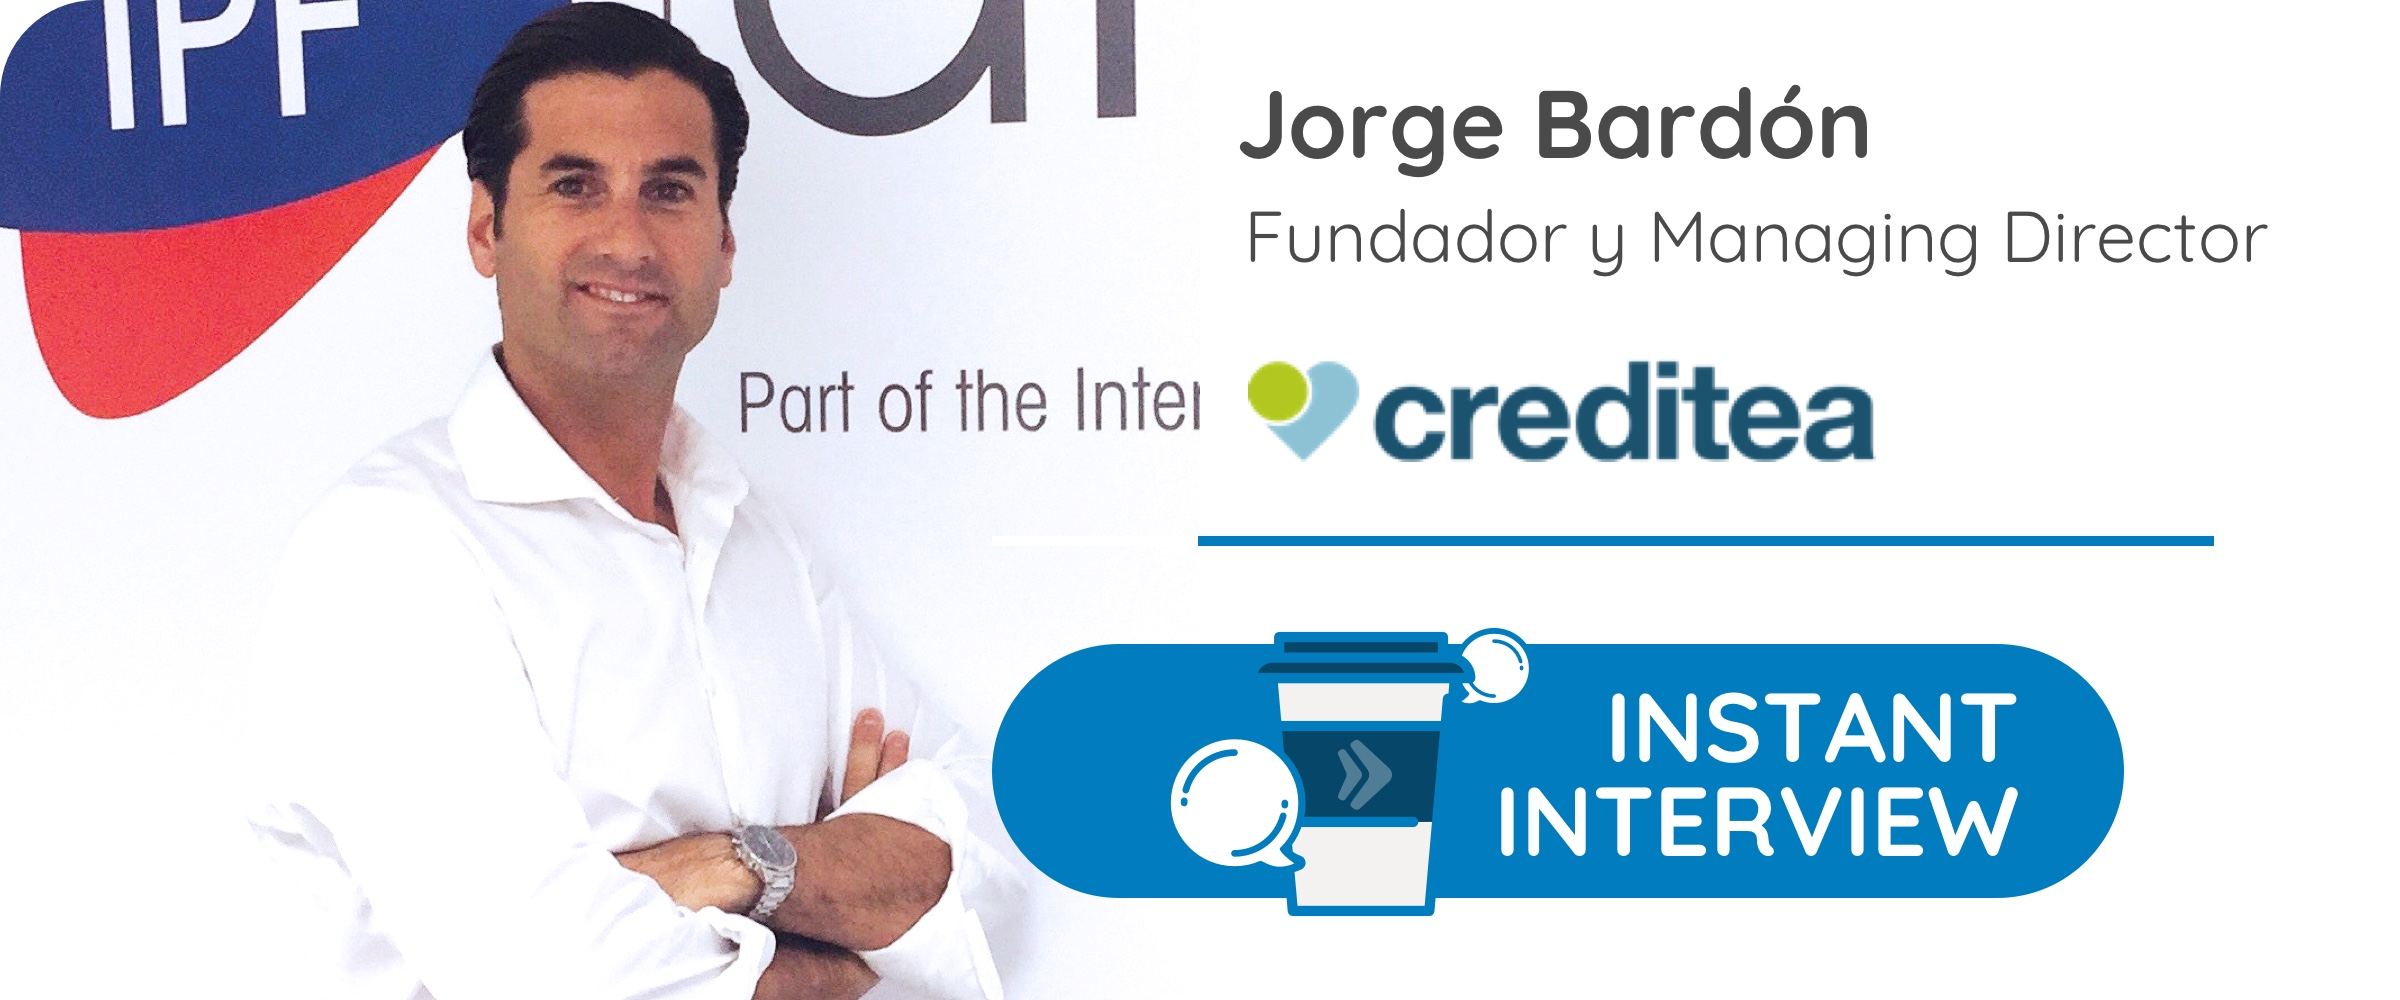 J.B, Fundador y Managing Director en la financiera Creditea